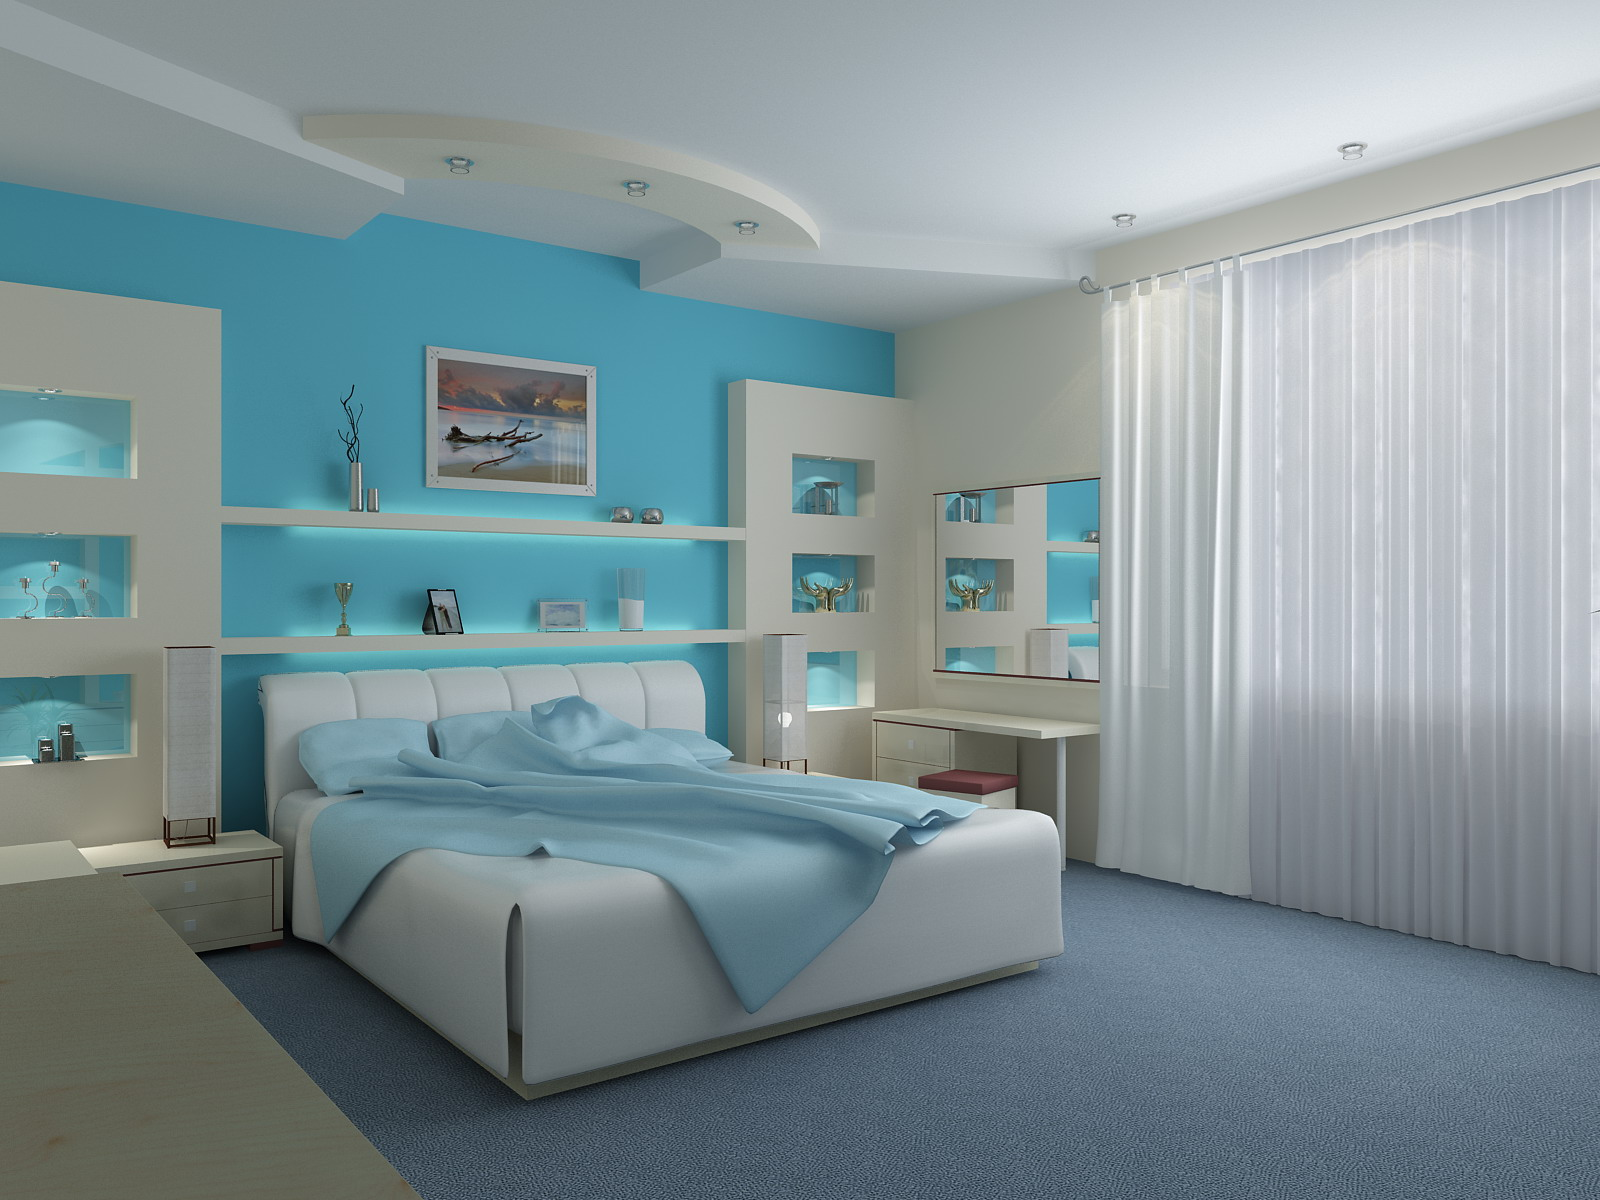 Bedroom Interior Design With Blue Wallpapers , 1600x1200